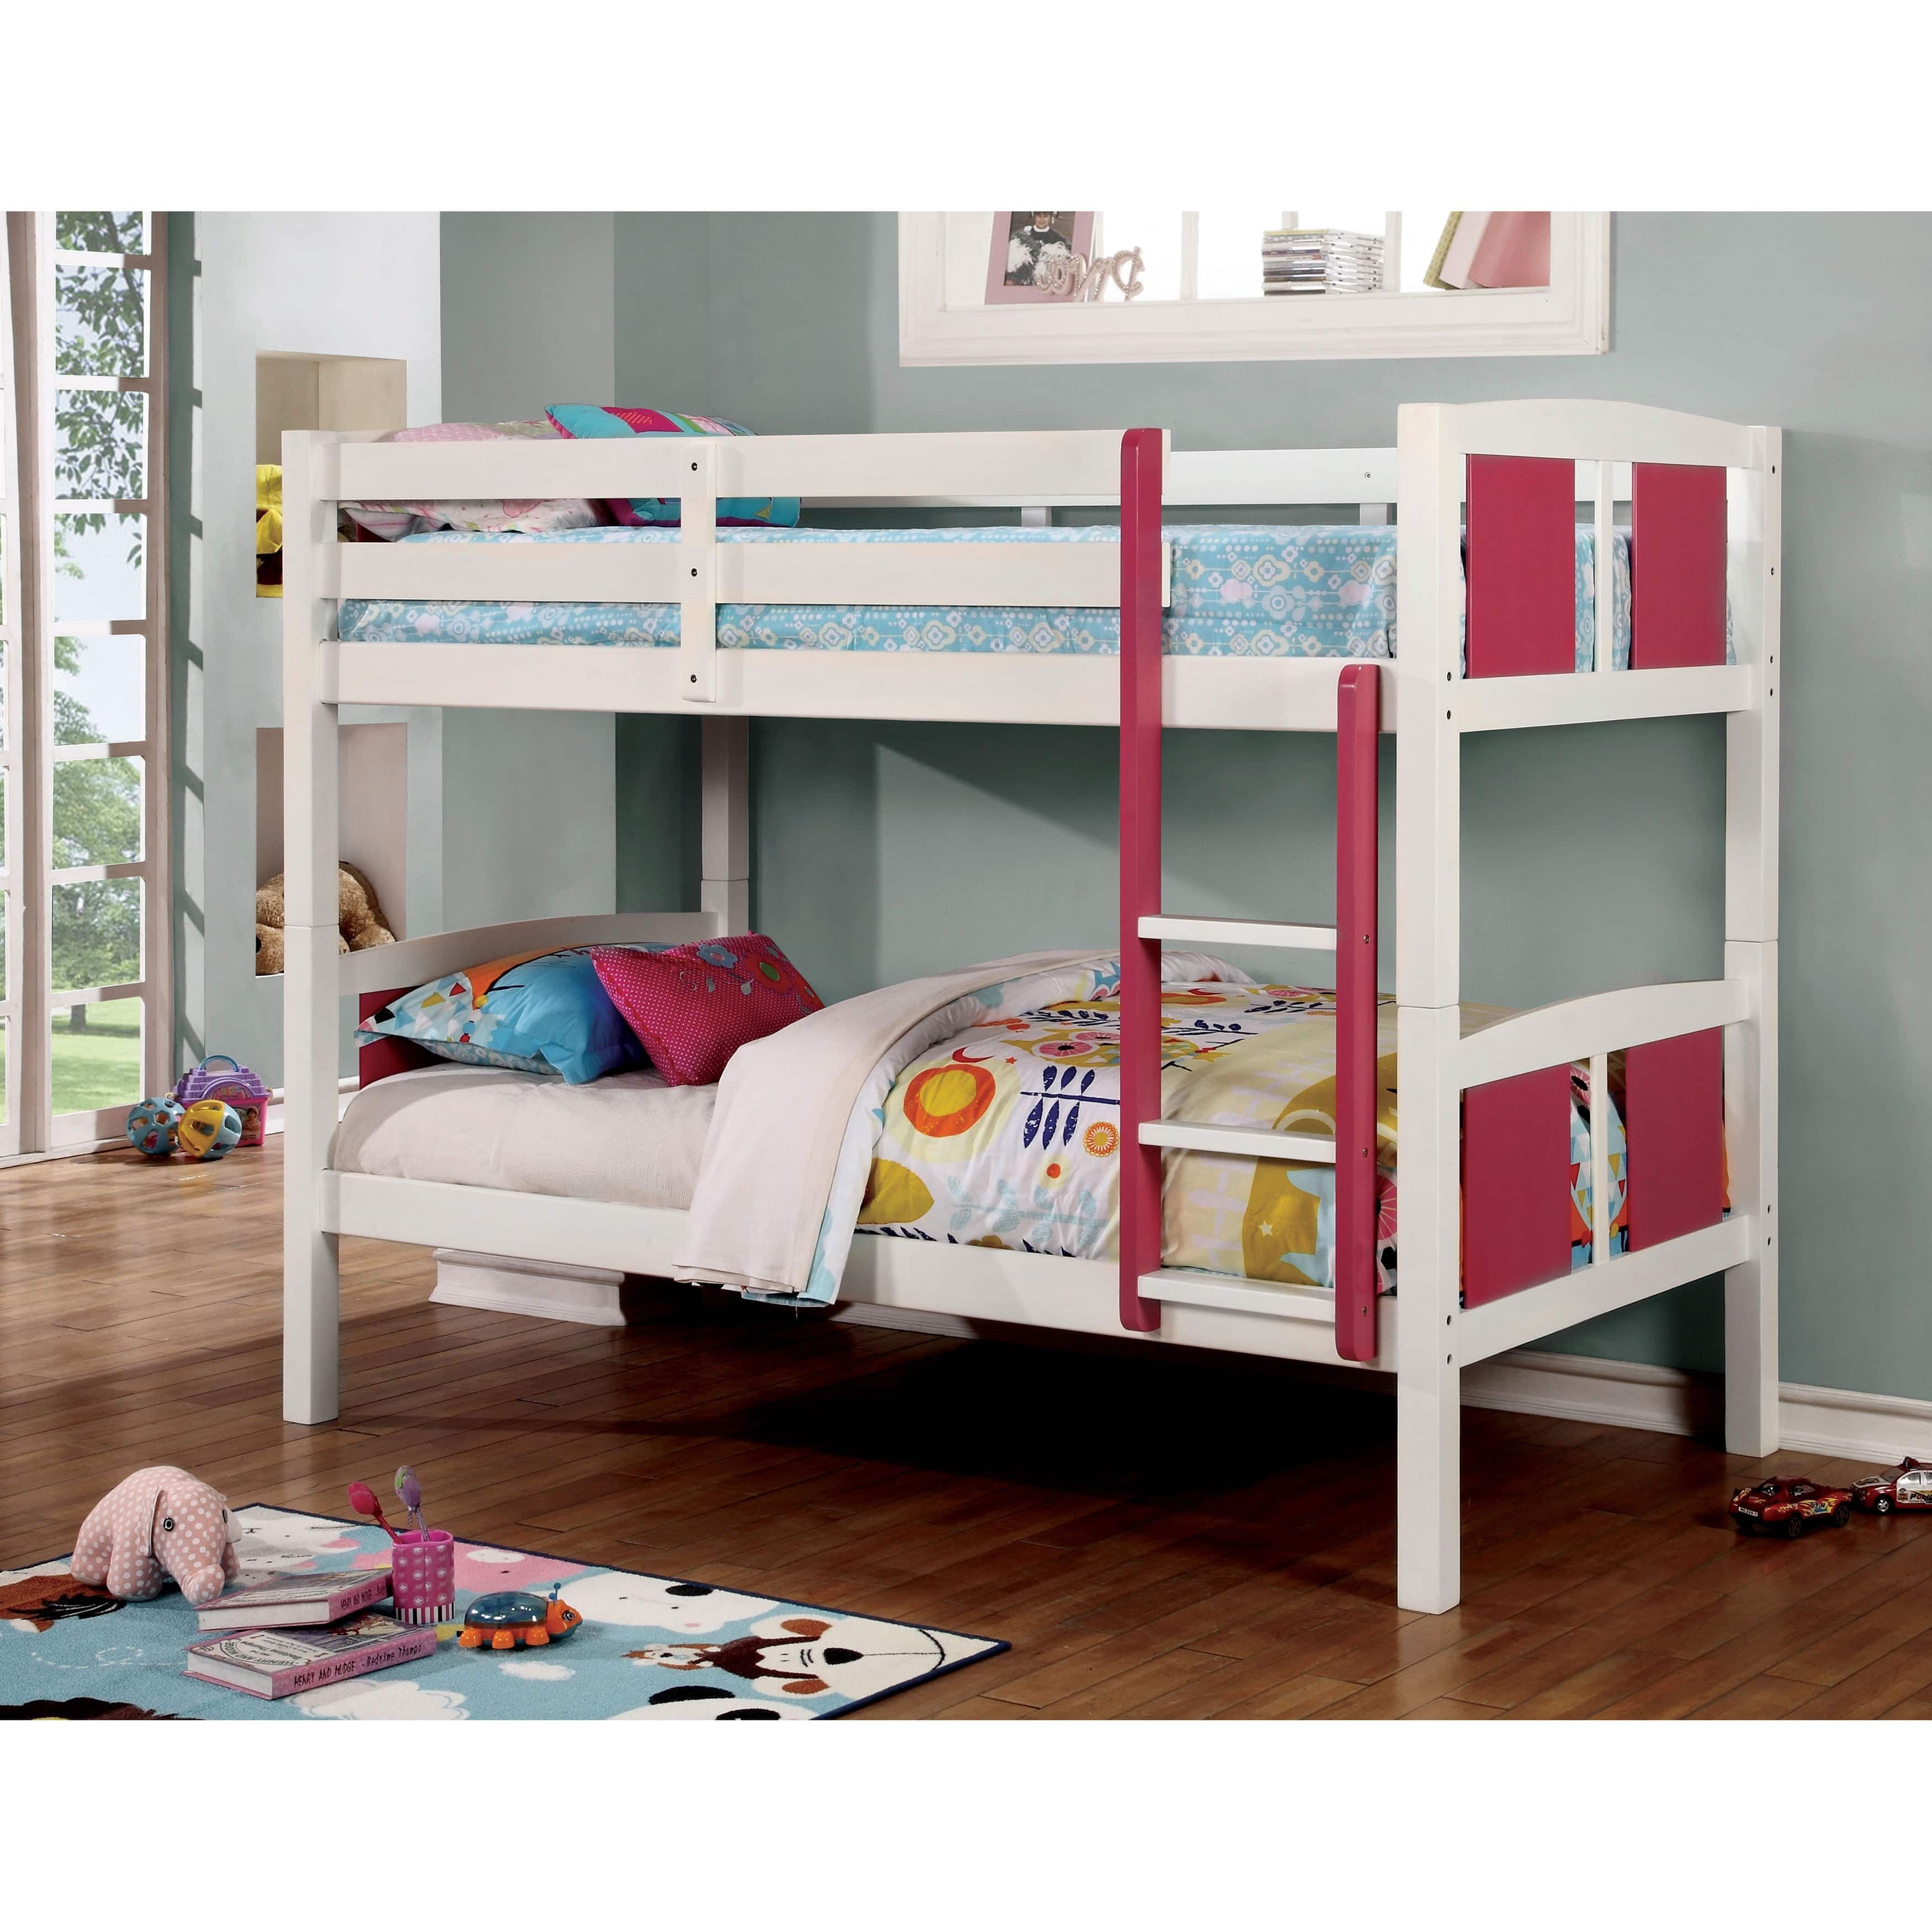 Furniture of America Foso Transitional White Solid Wood